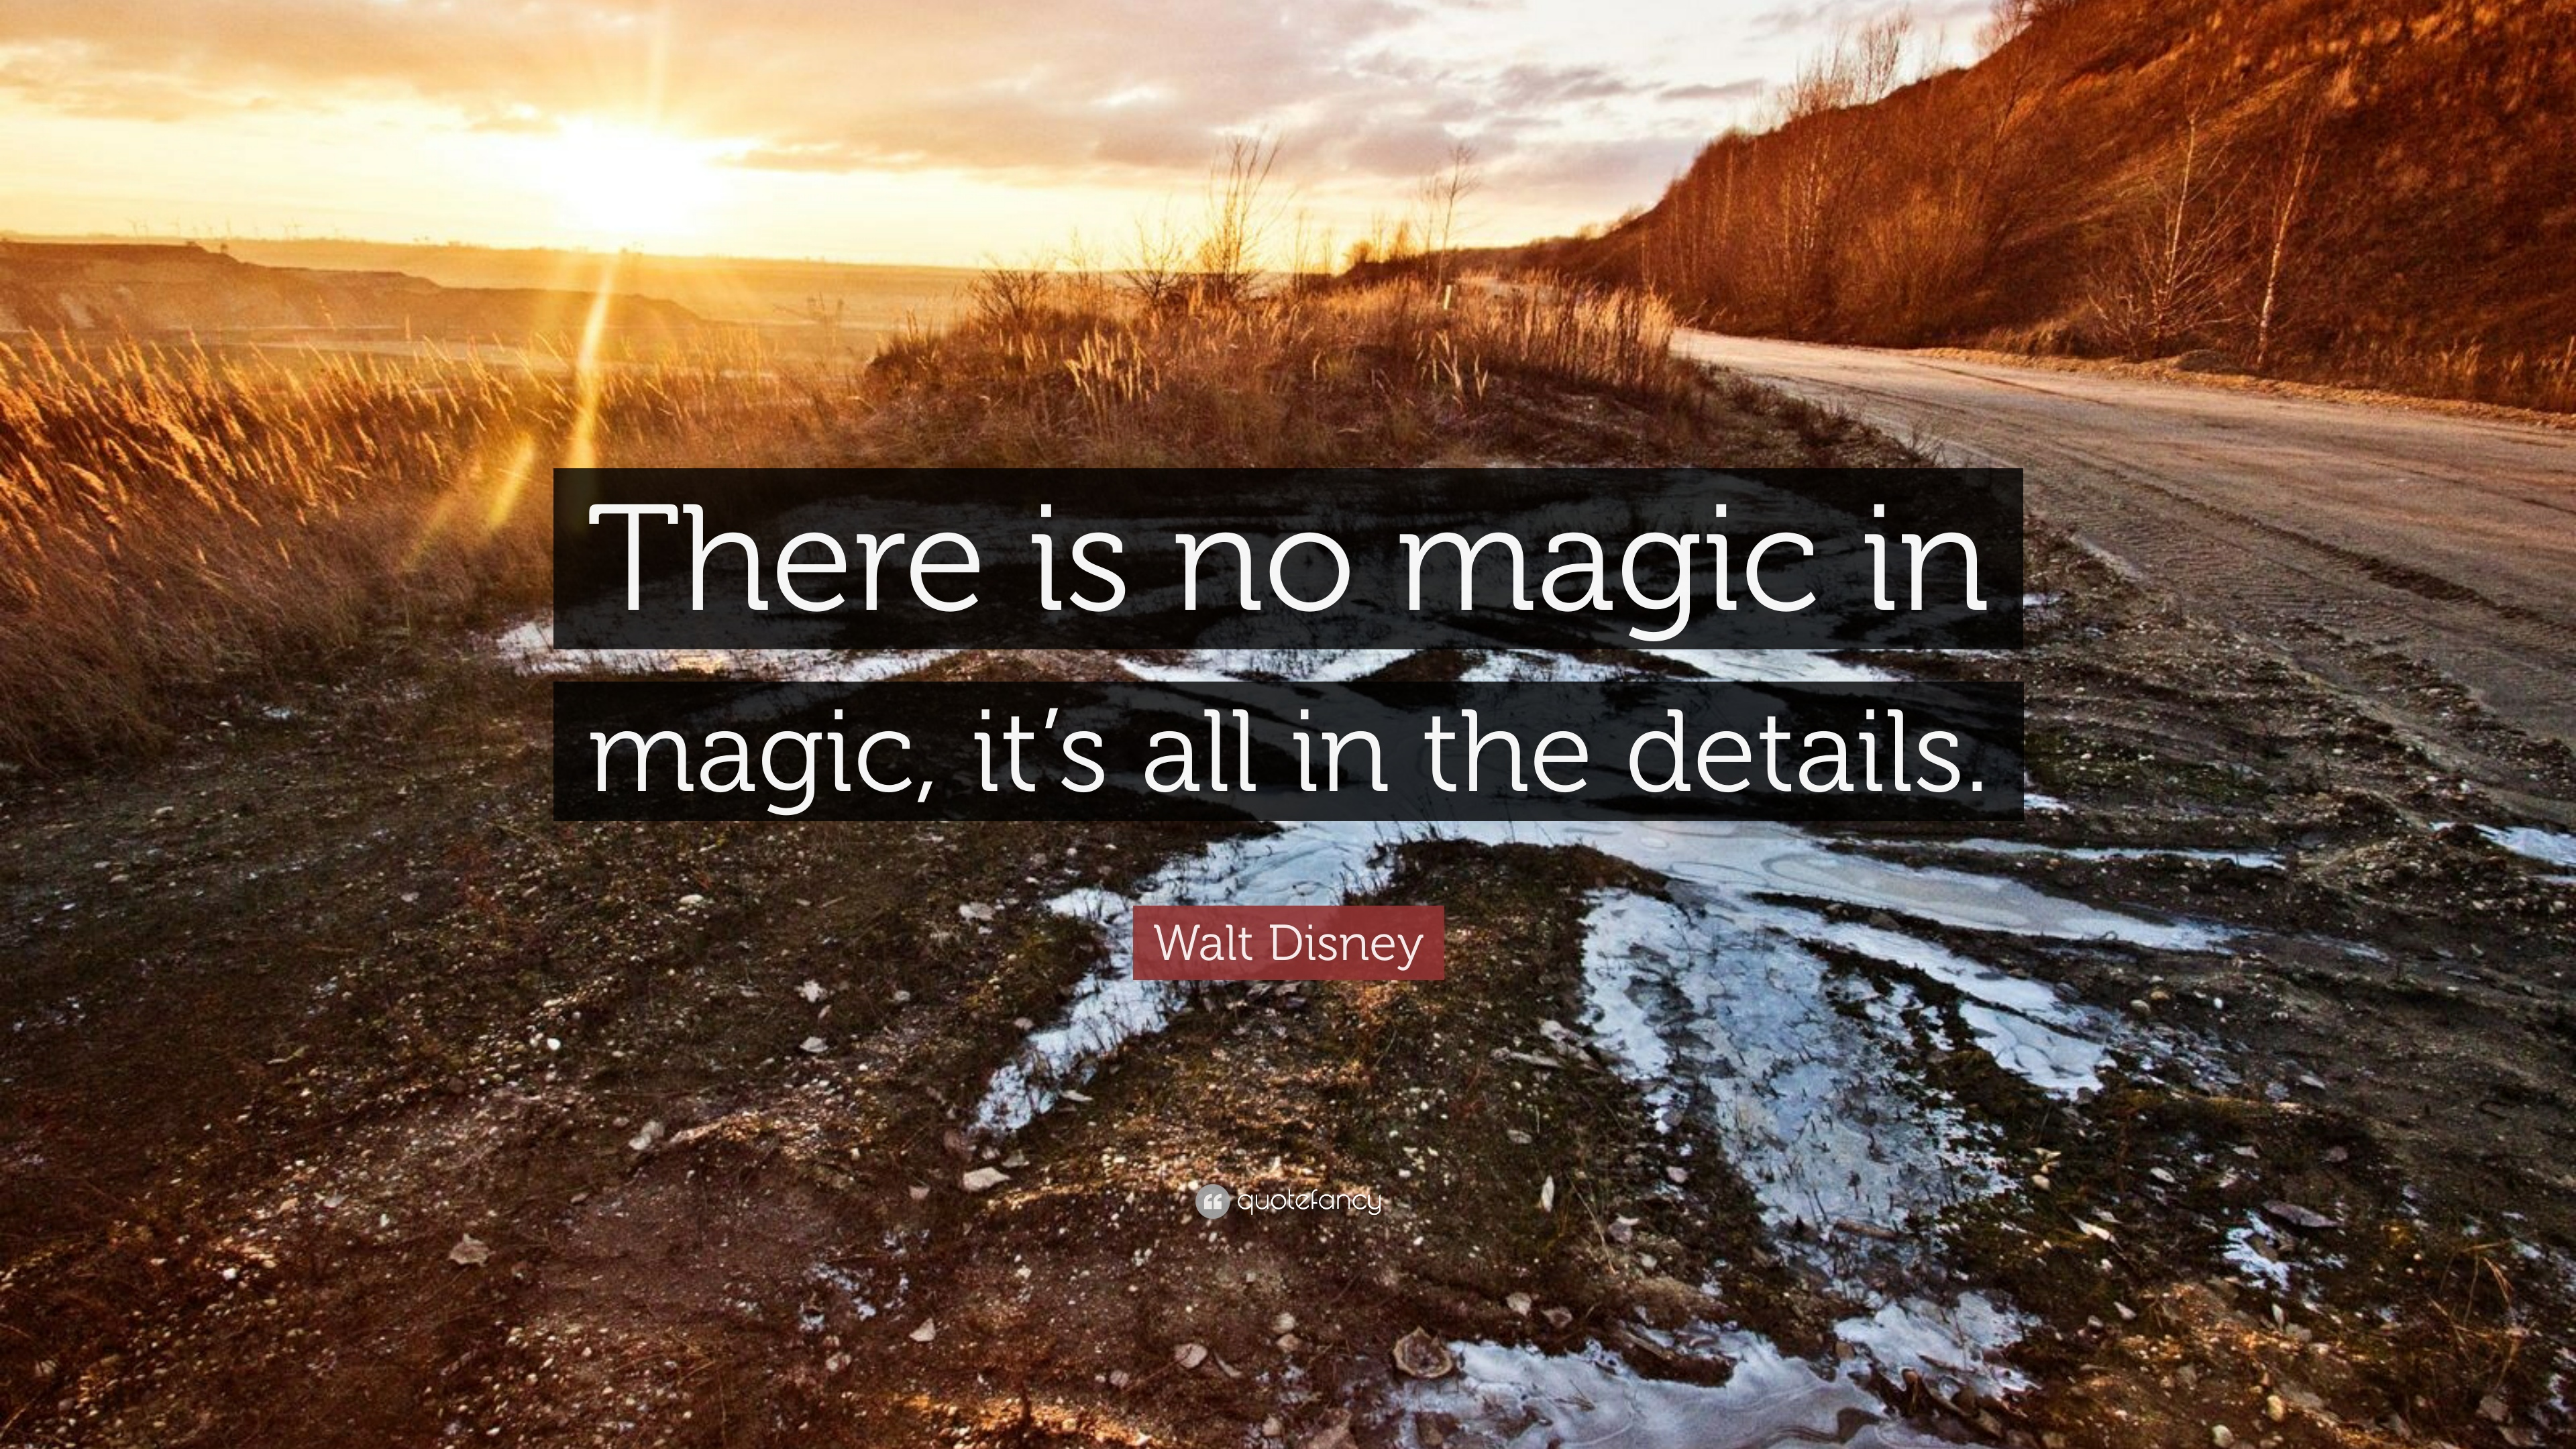 Walt Disney Quote u201cThere is no magic